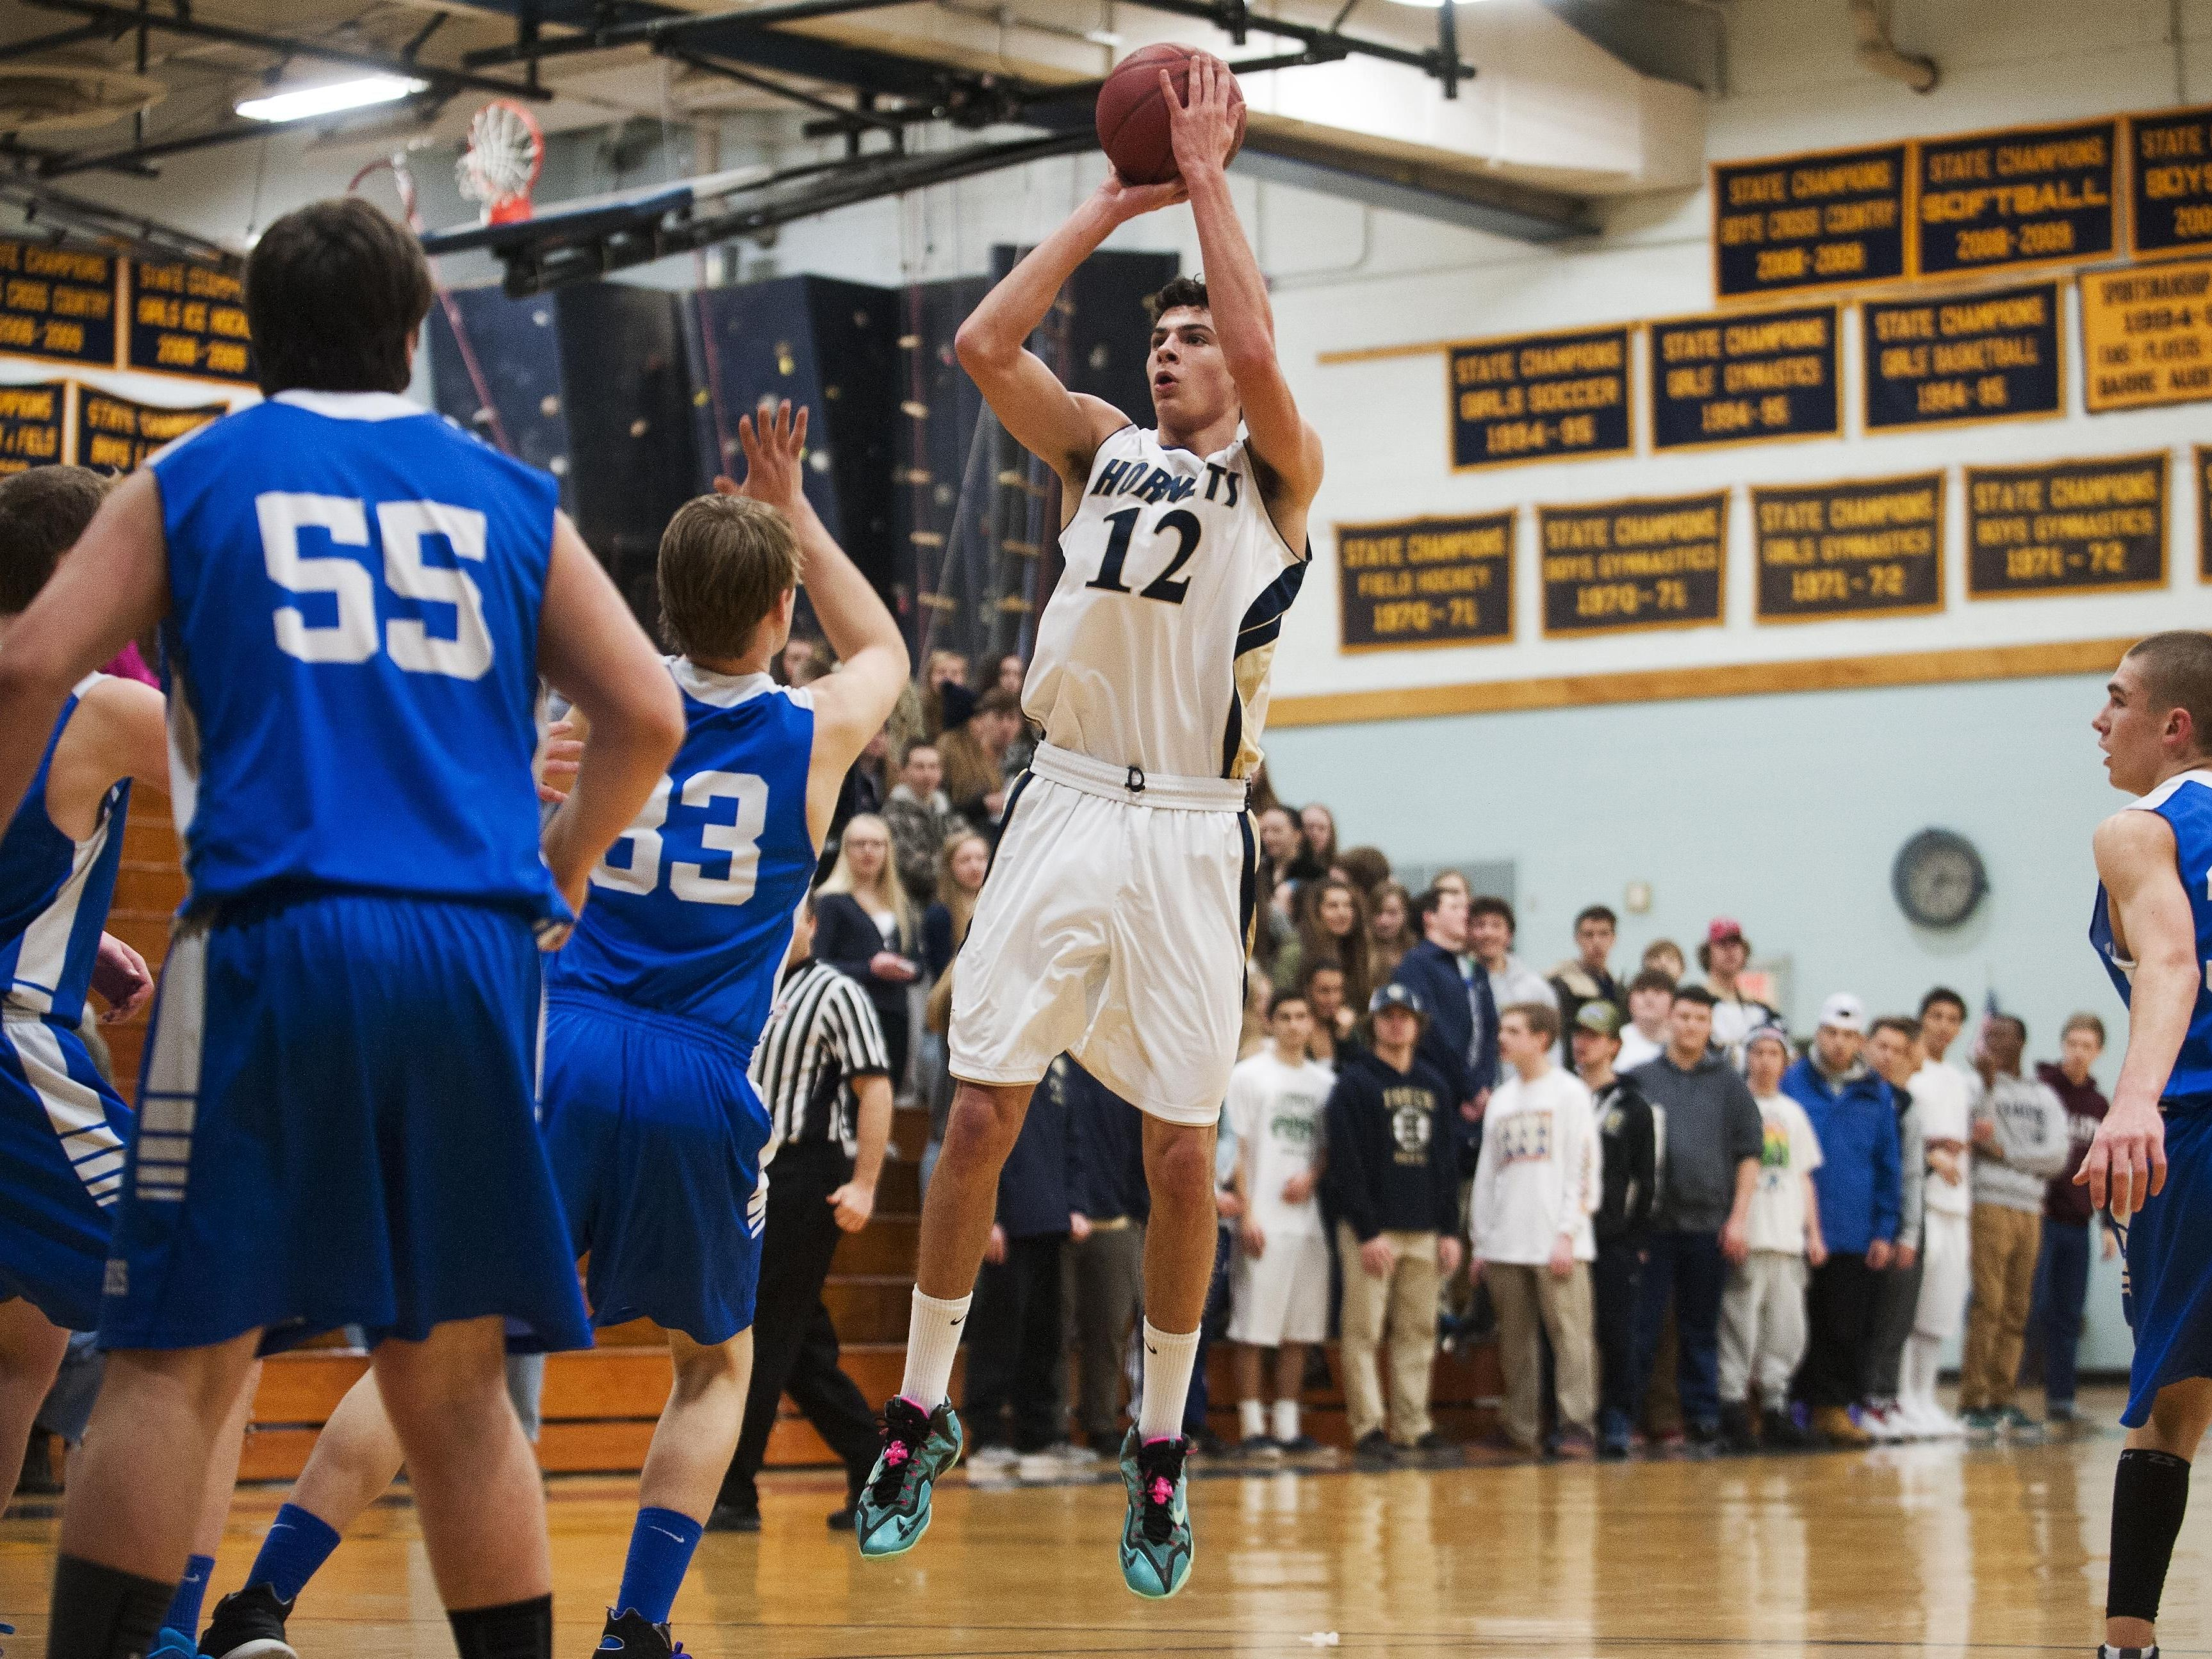 Essex's Eli DiGrande (12) takes a jump shot during the boys basketball game against Missisquoi on Tuesday night February 24 in Essex.